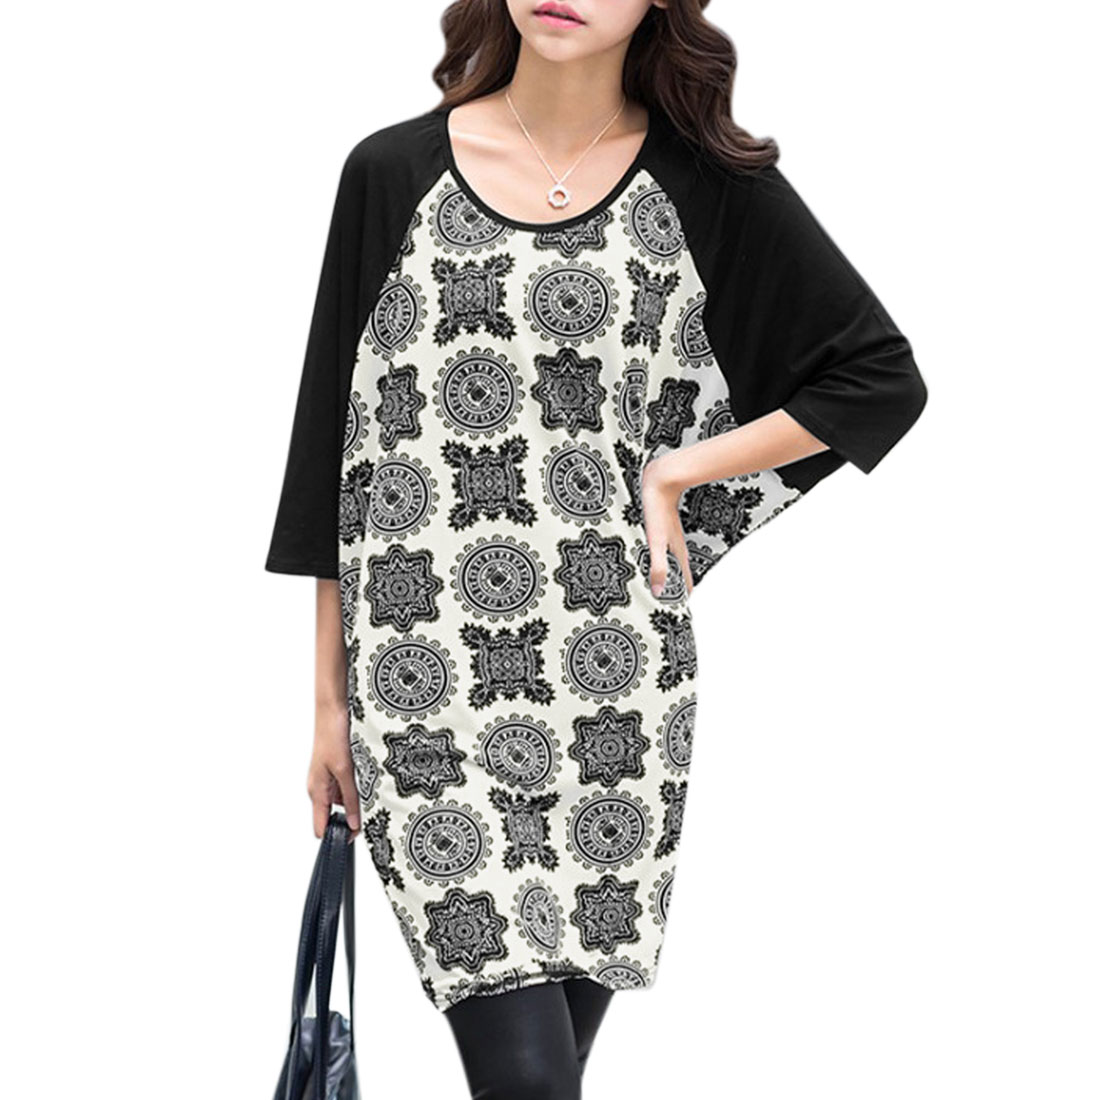 Allegra K Women's Short Batwing Sleeves Novelty Print Loose Tunic Tops White Black (Size S / 4)